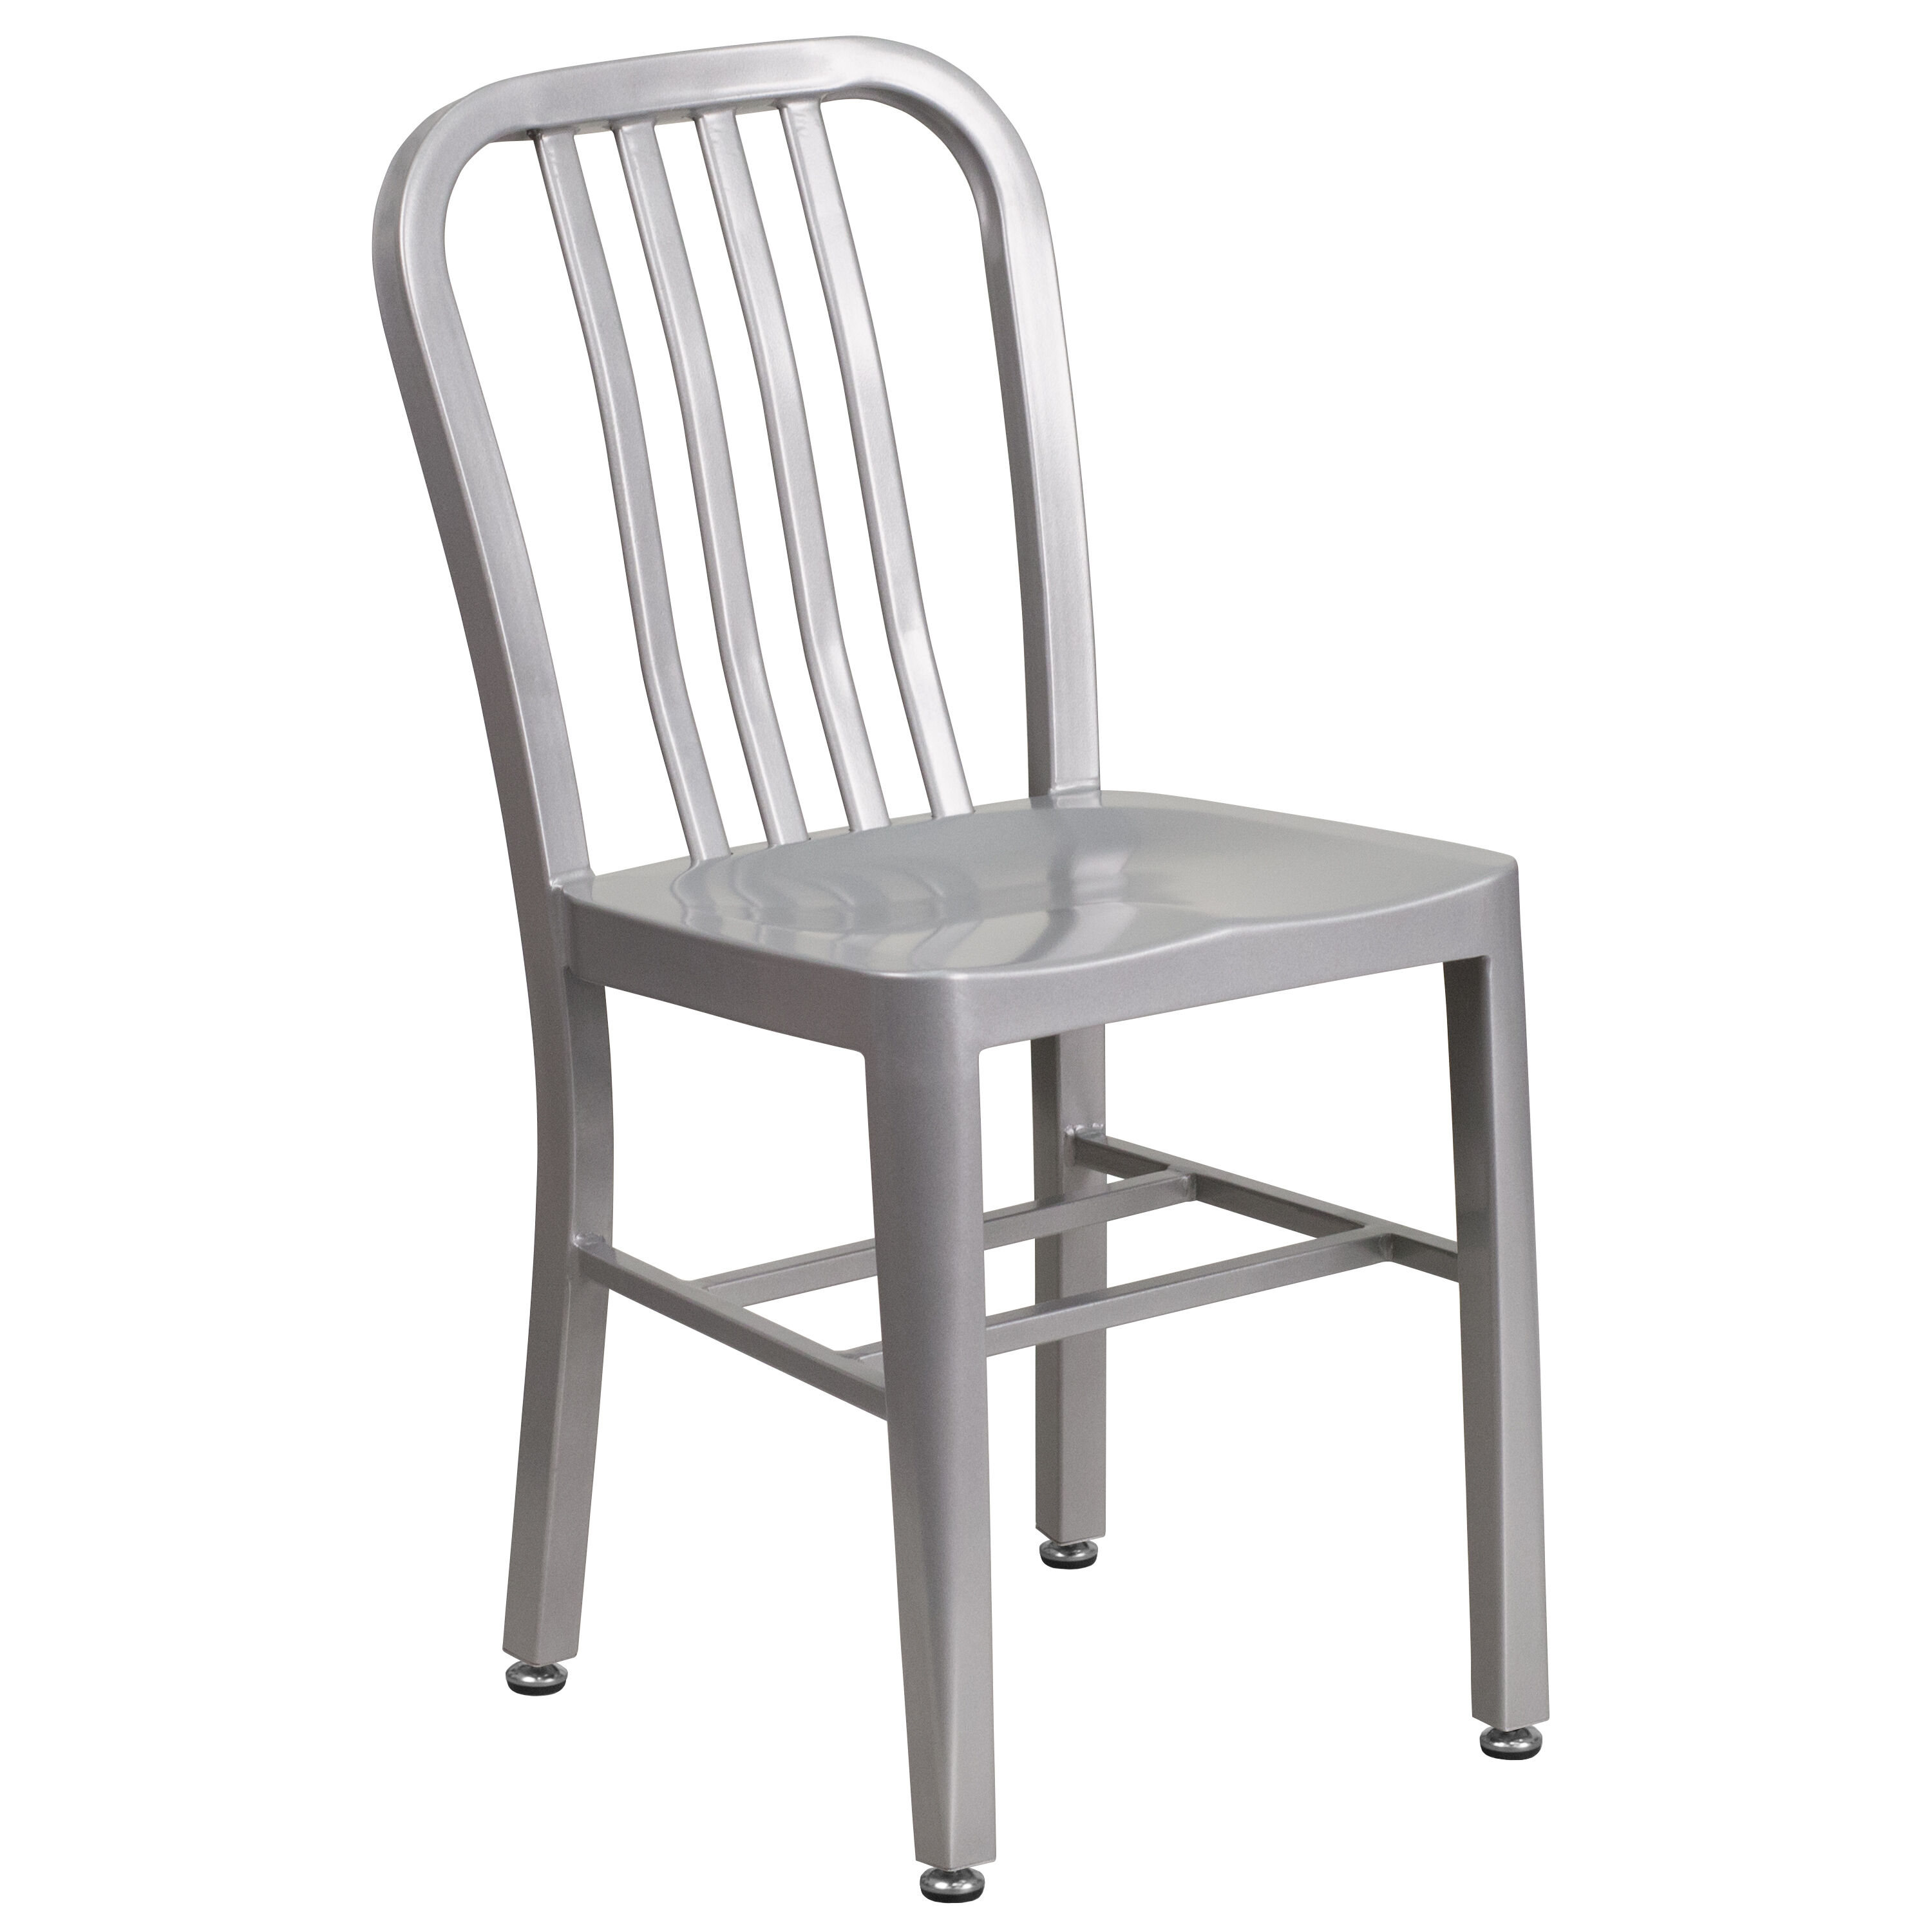 white metal chairs red leather parsons restaurantfurniture4less patio and outdoor furniture silver indoor chair